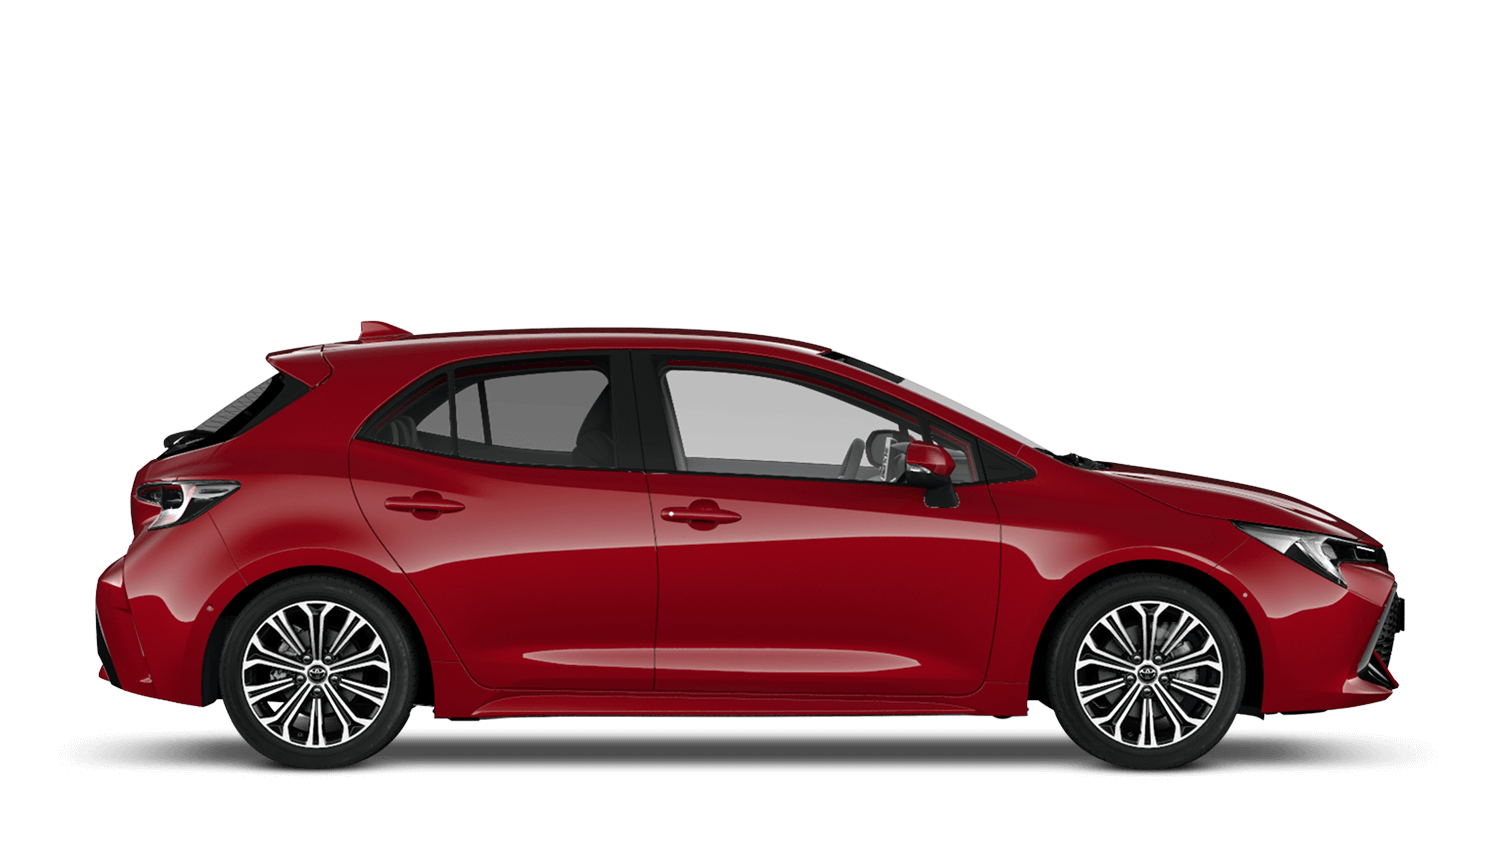 Toyota Business: New Corolla Hybrid Design